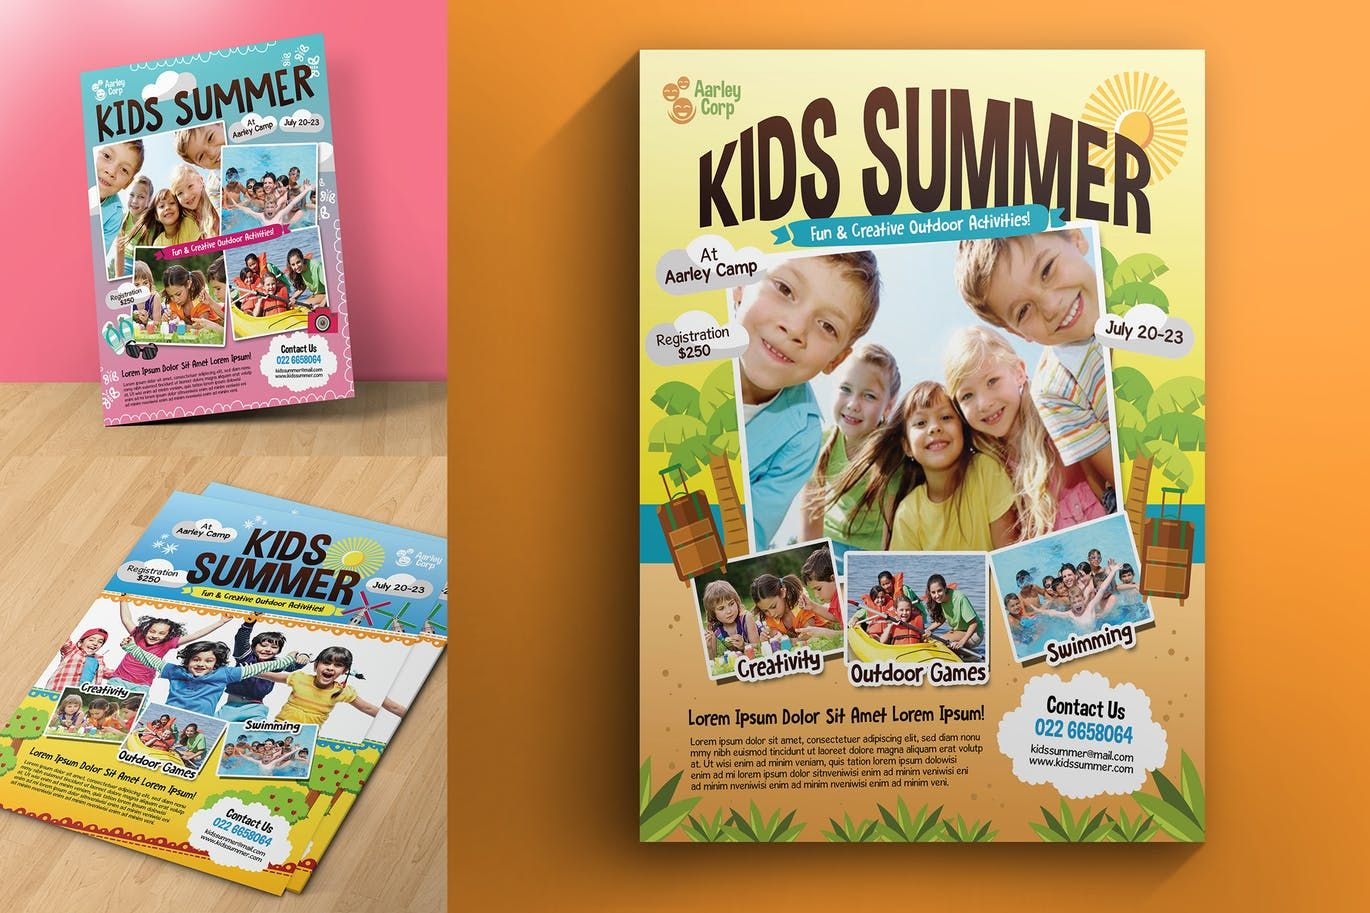 kids summer camp flyers template psd letter size 8511 inches bleed area a4 size 210297 mm bleed area 3 alternative design cmyk 300